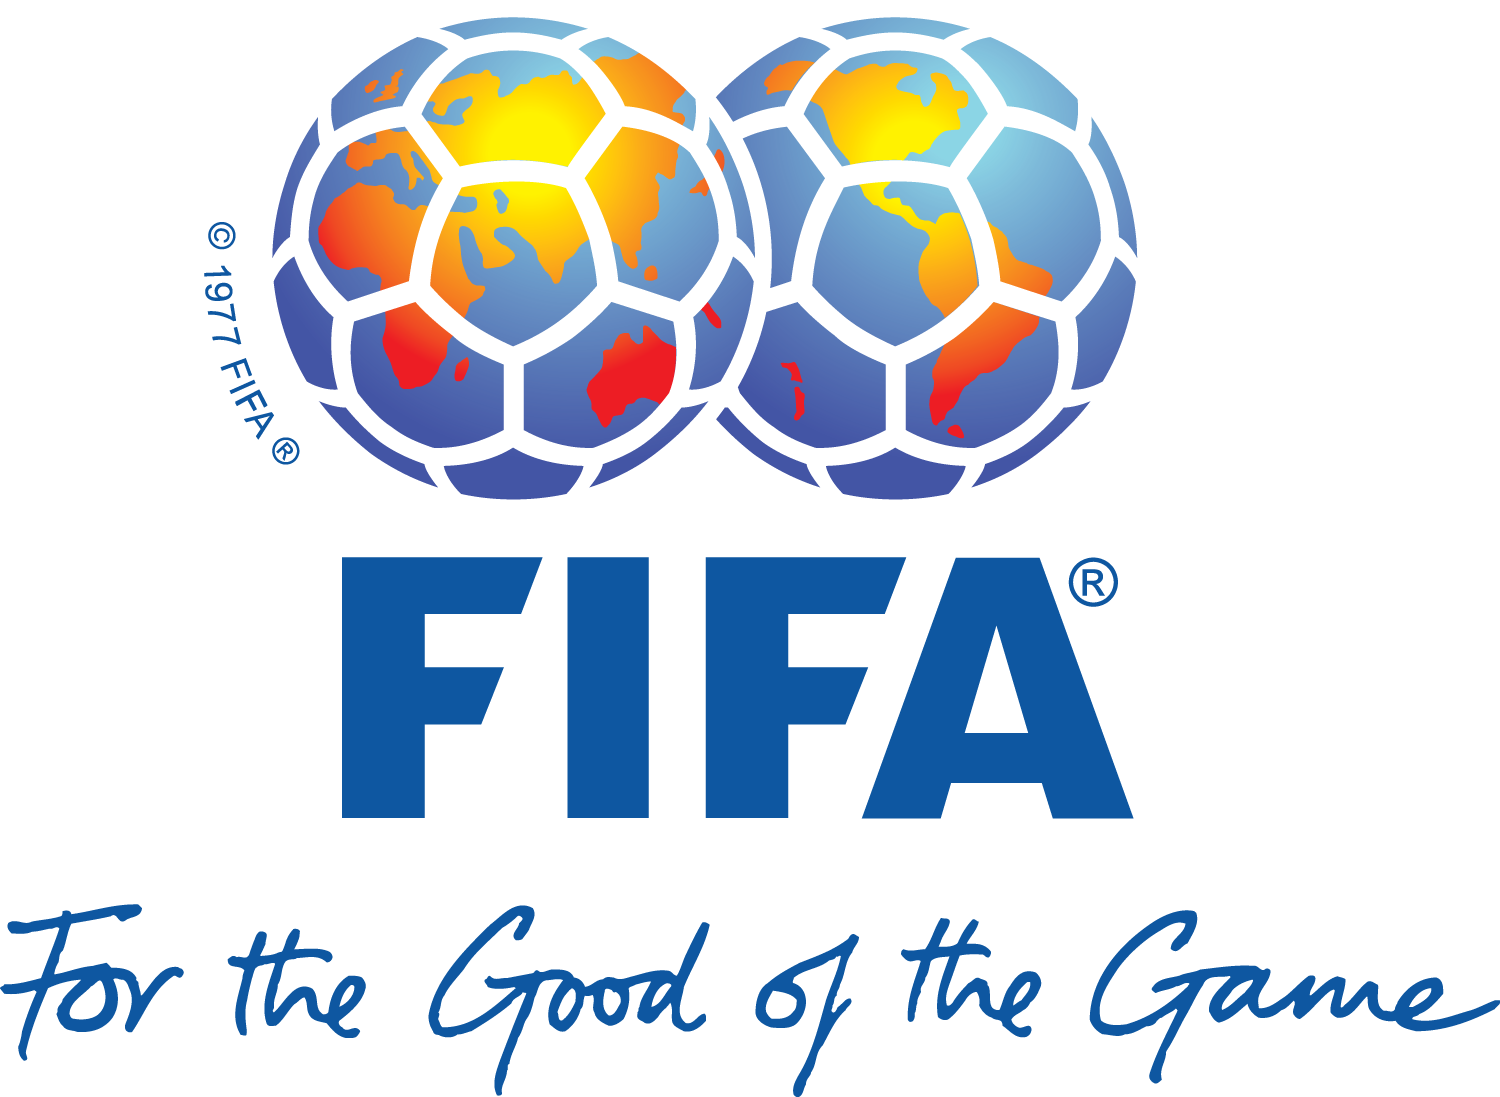 BREAKING NEWS: Ghana given ultimatum by FIFA to withdraw legal proceedings to dissolve GFA or face its wrath